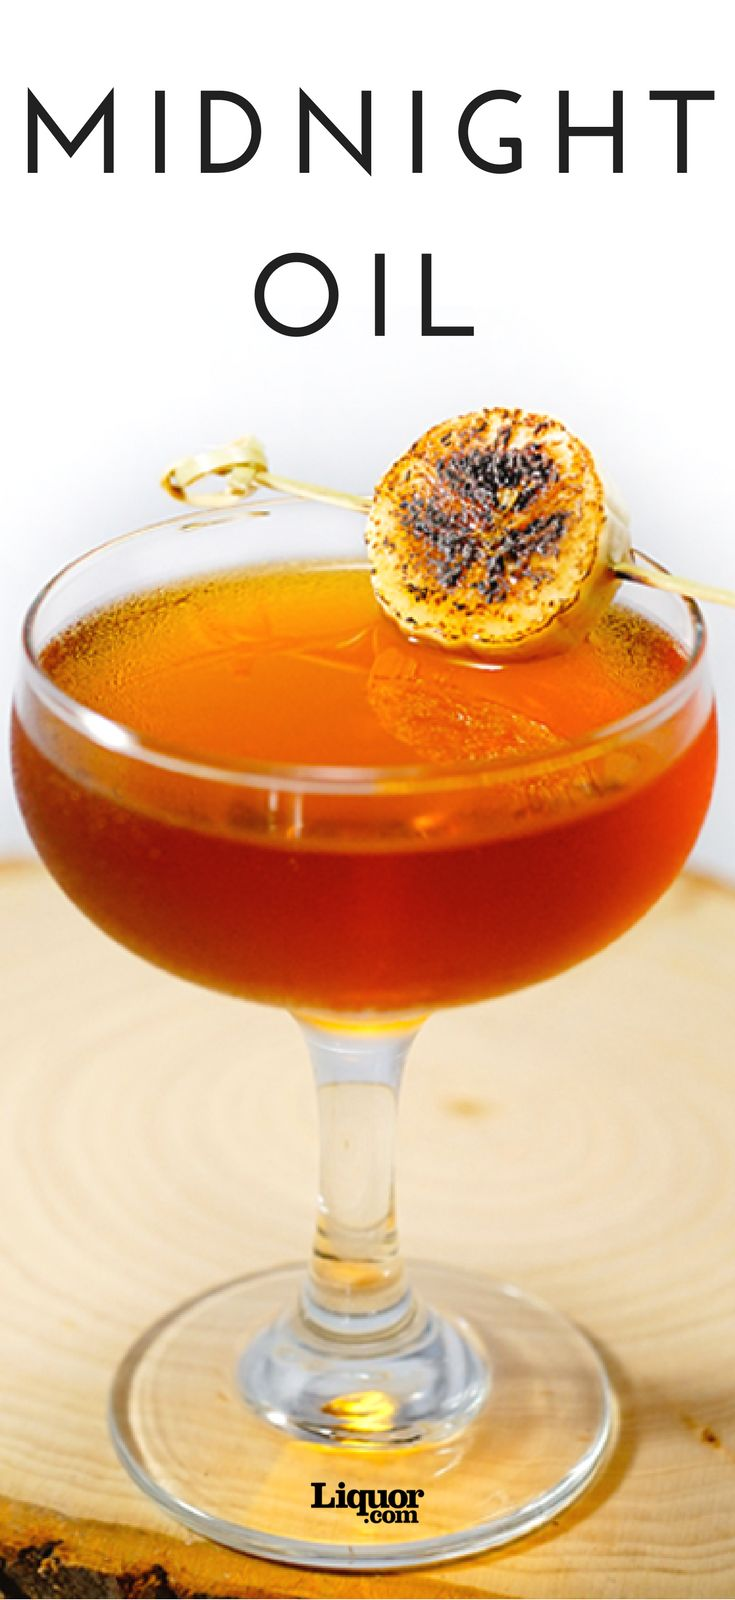 """""""The Midnight Oil brings to life in cocktail form one of my all-time favorite snack combos: a morning coffee and a slice or two of banana bread,"""" says bartender Brett Esler of Whisler's in Austin. """"With an aged rum base, a touch of the Domaine de Canton ginger liqueur for a little depth and some vanilla extract to round it out, you have yourself a slightly caffeinated, fall-driven sipper."""""""